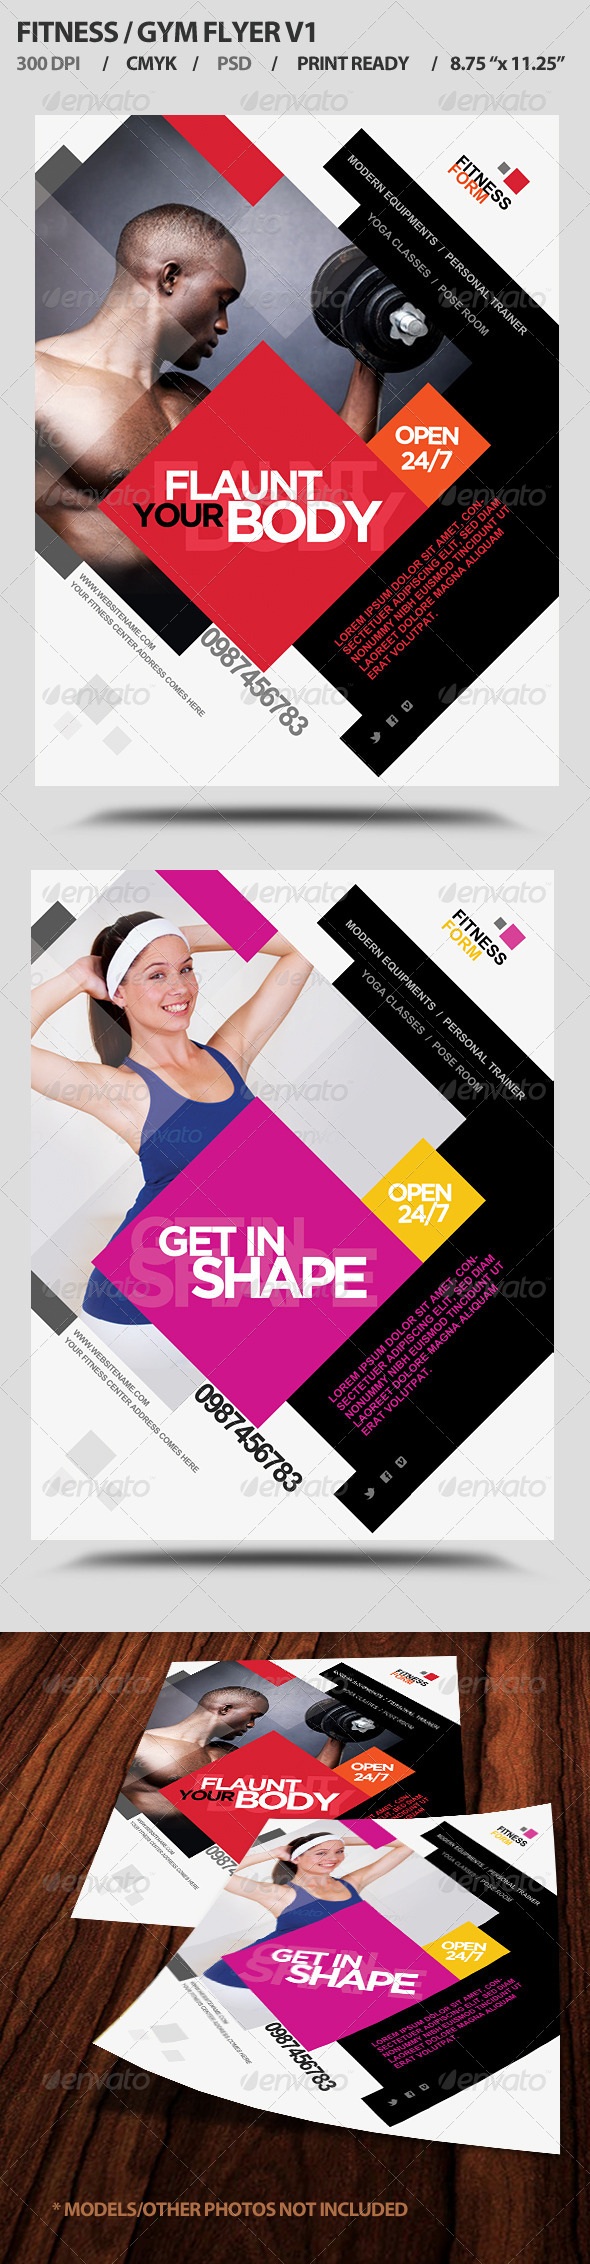 Fitness/Gym Business Promotion Flyer V1 - Commerce Flyers